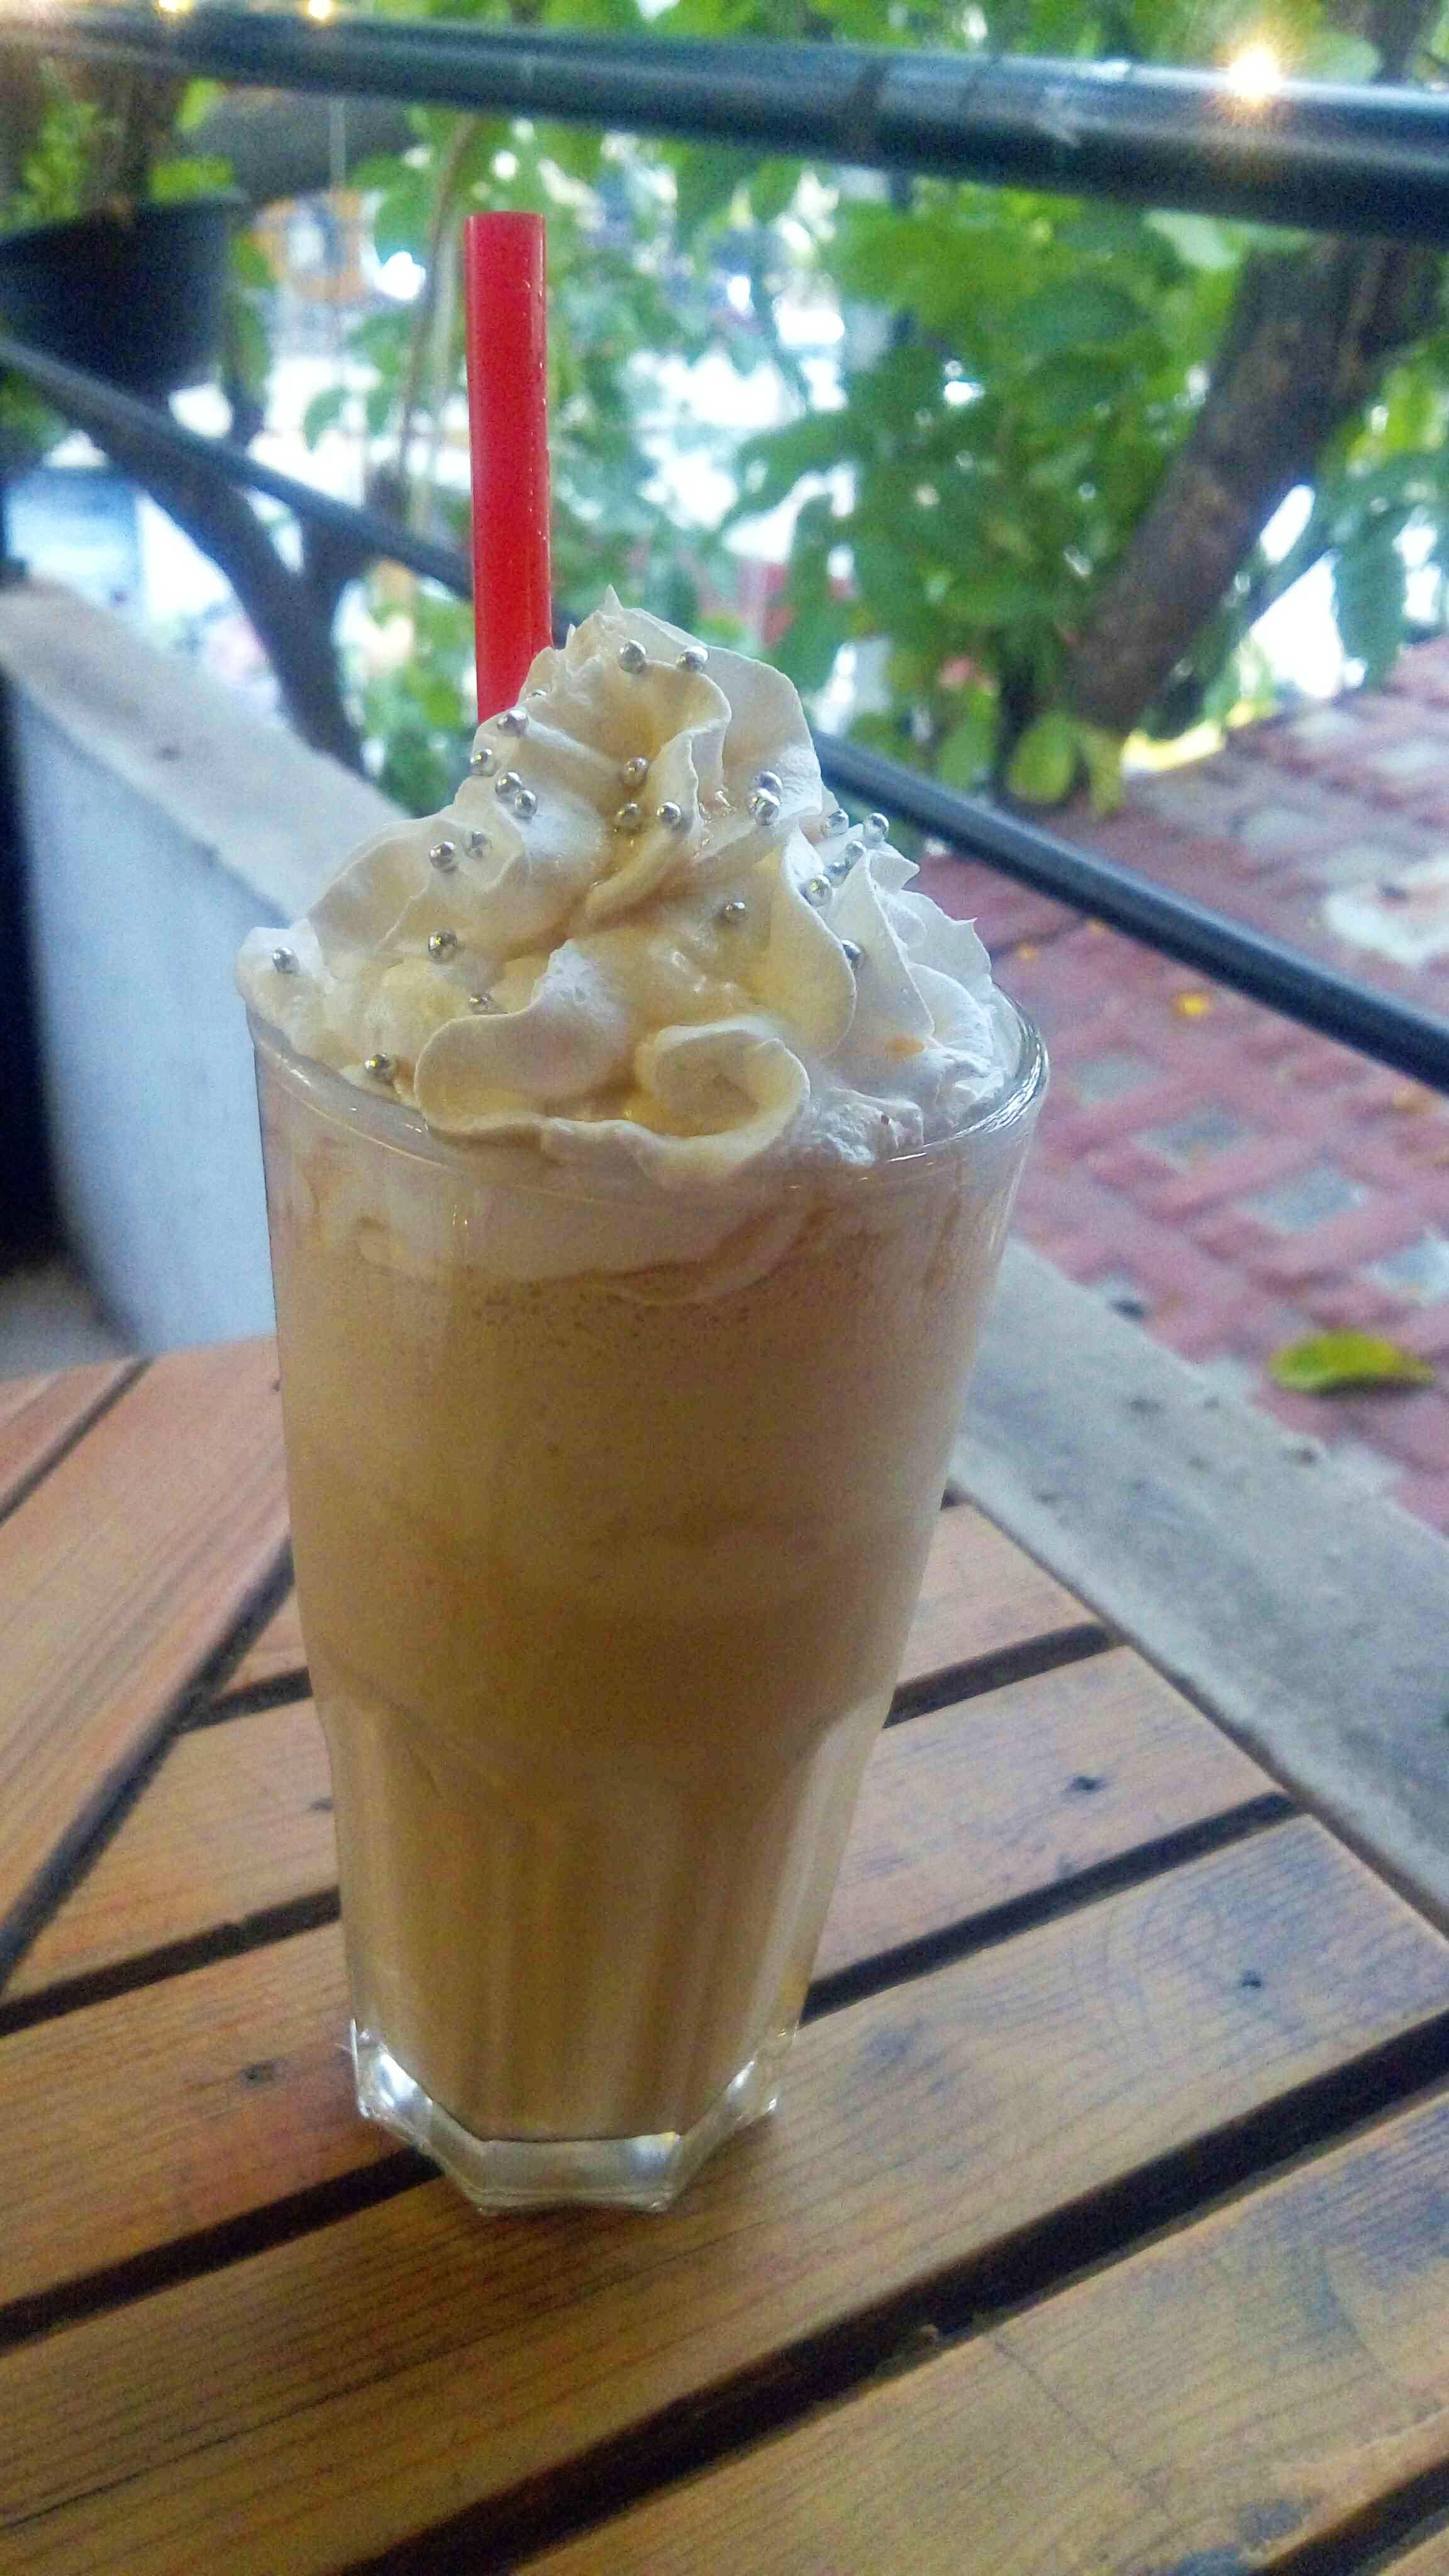 Drink,Food,Milkshake,Iced coffee,Irish cream,Boza,Frappé coffee,Floats,Coffee,Smoothie